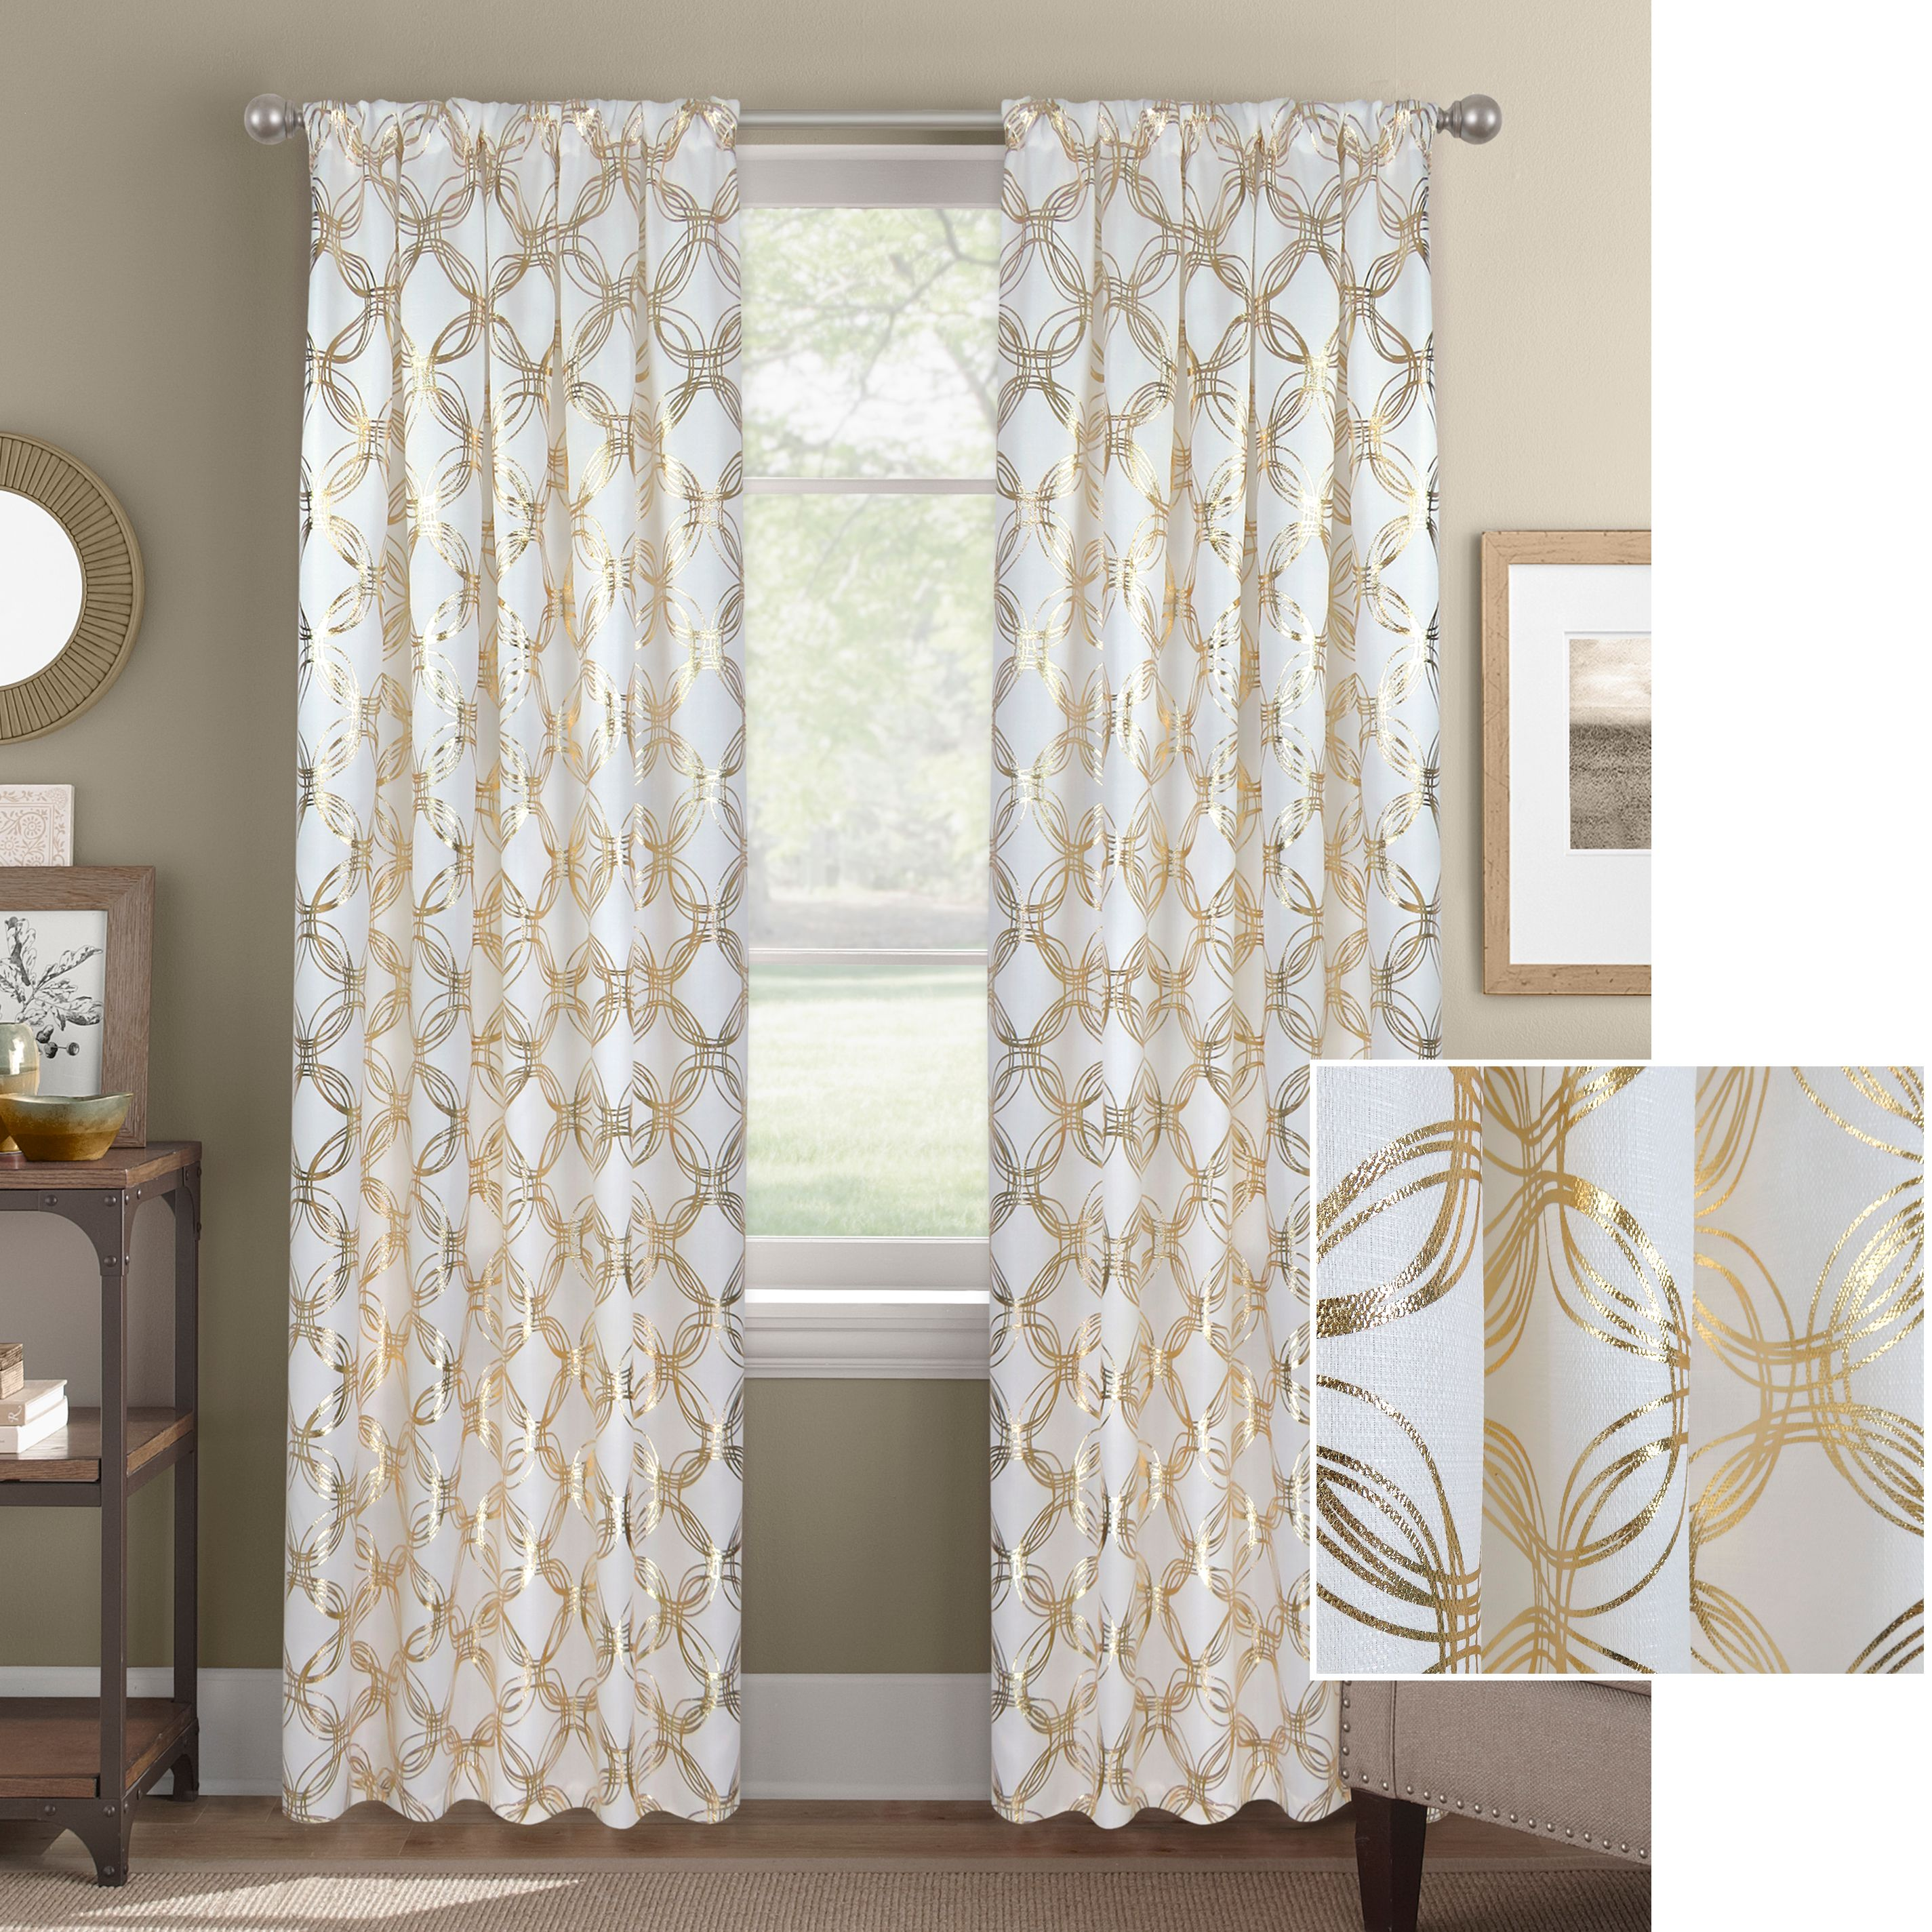 Better Homes & Gardens Chain link Metallic Gold or Silver Window Curtain Panel